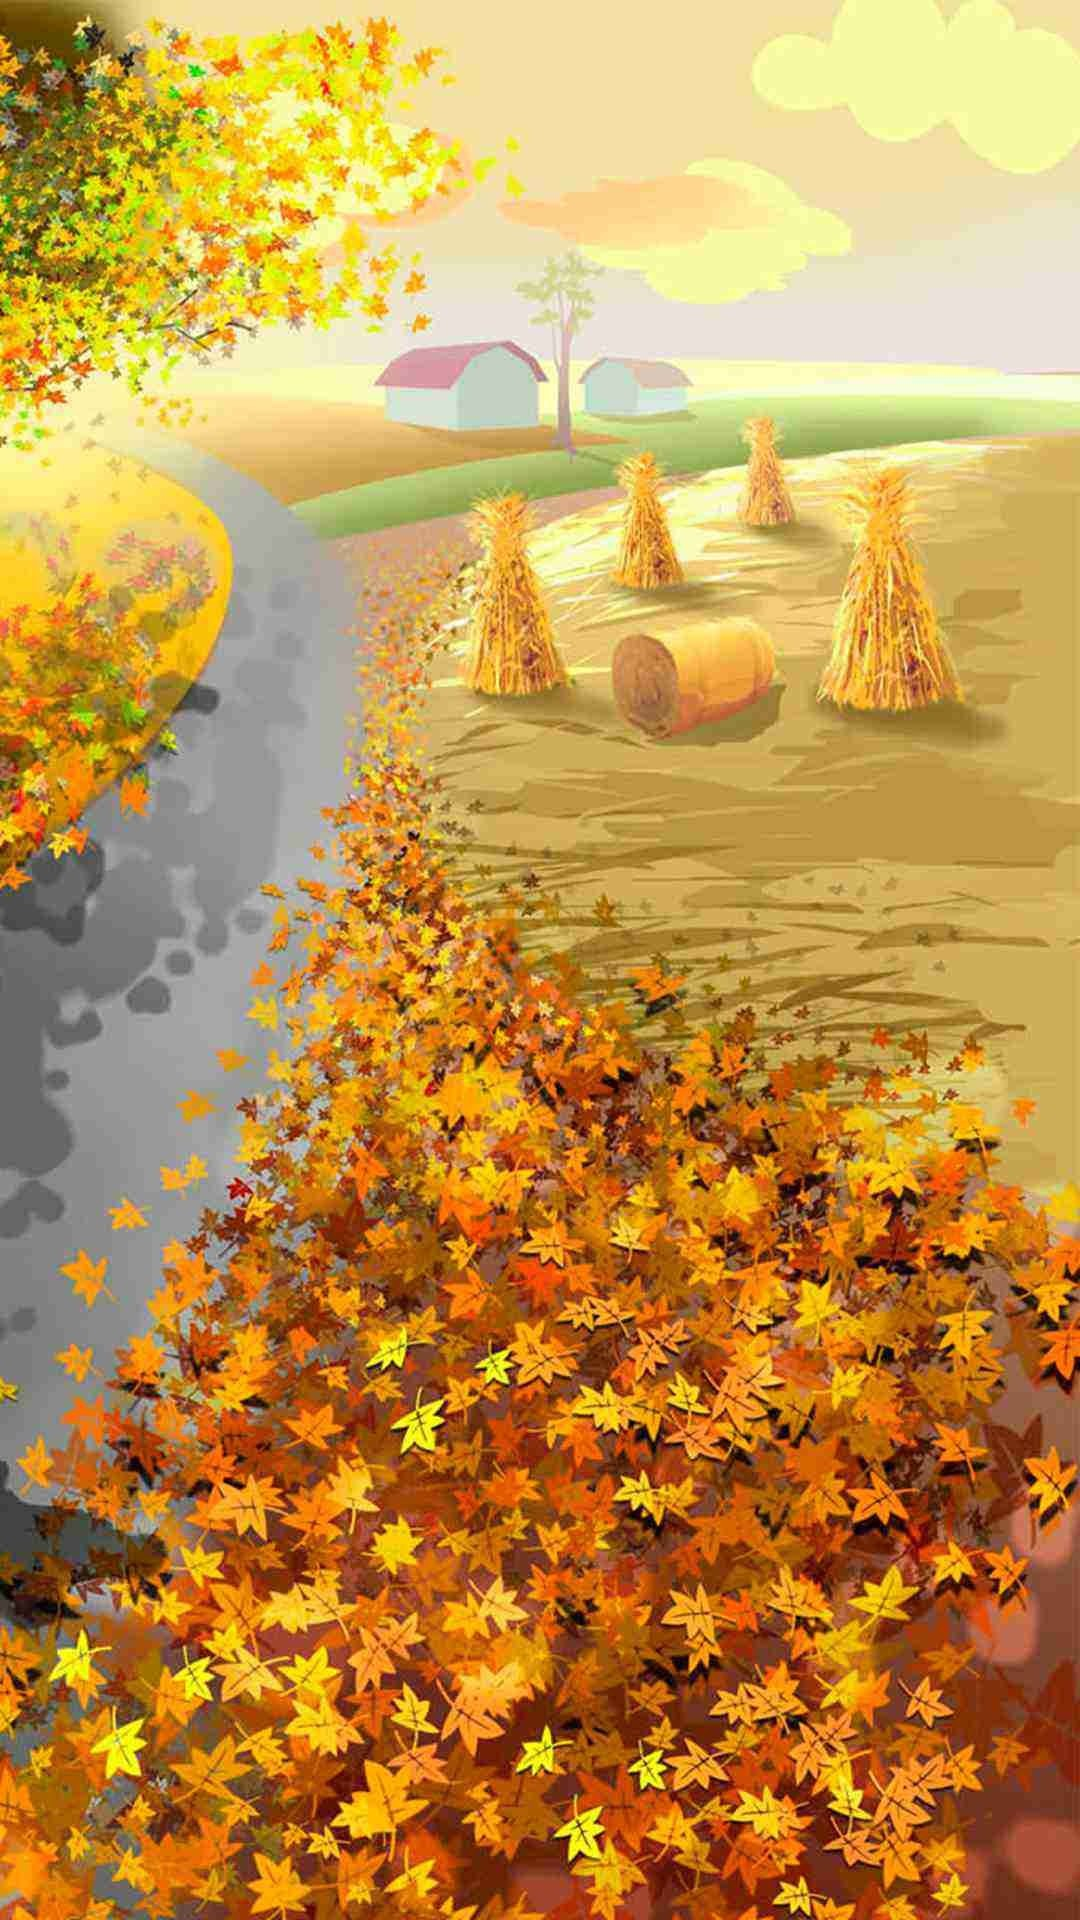 Gold Fall Leaf 2015 Thanksgiving iPhone 6 Plus Wallpaper – Nature, House,  Road